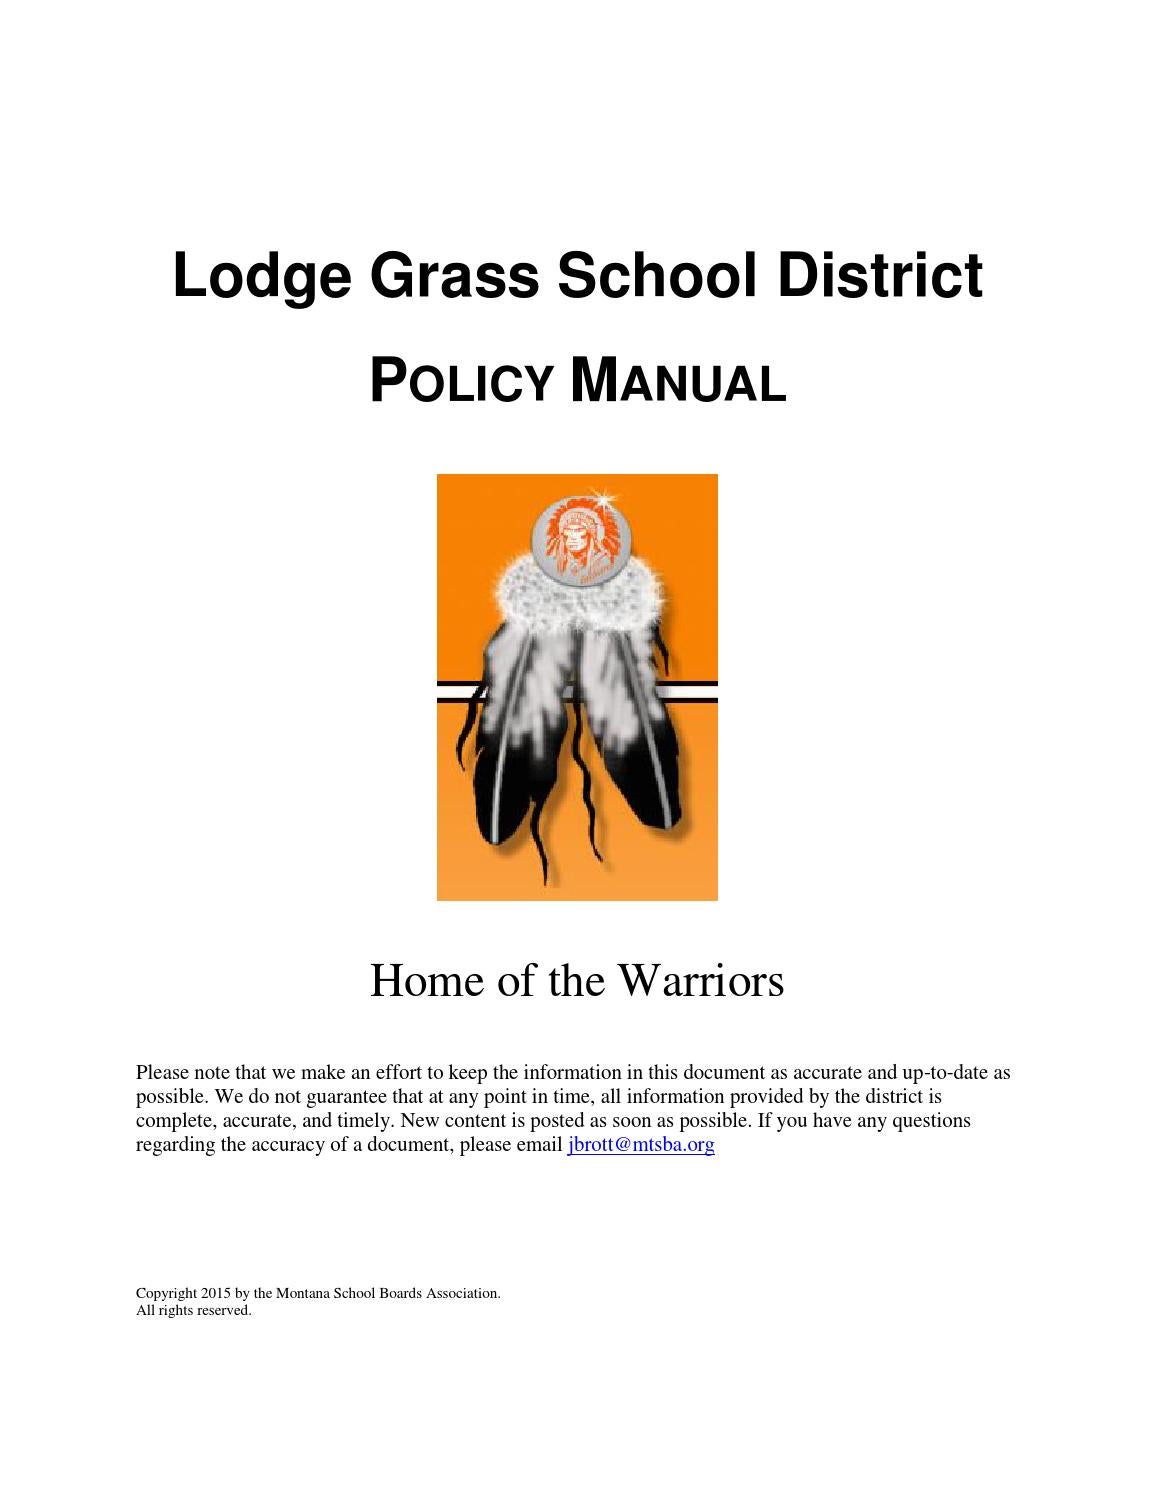 lodge grass dating Welcome to the lodge grass girls basketball team wall the most current information will appear at the top of the wall dating back to prior seasons utilize the left navigation tools to find past seasons, game schedules, rosters and more.